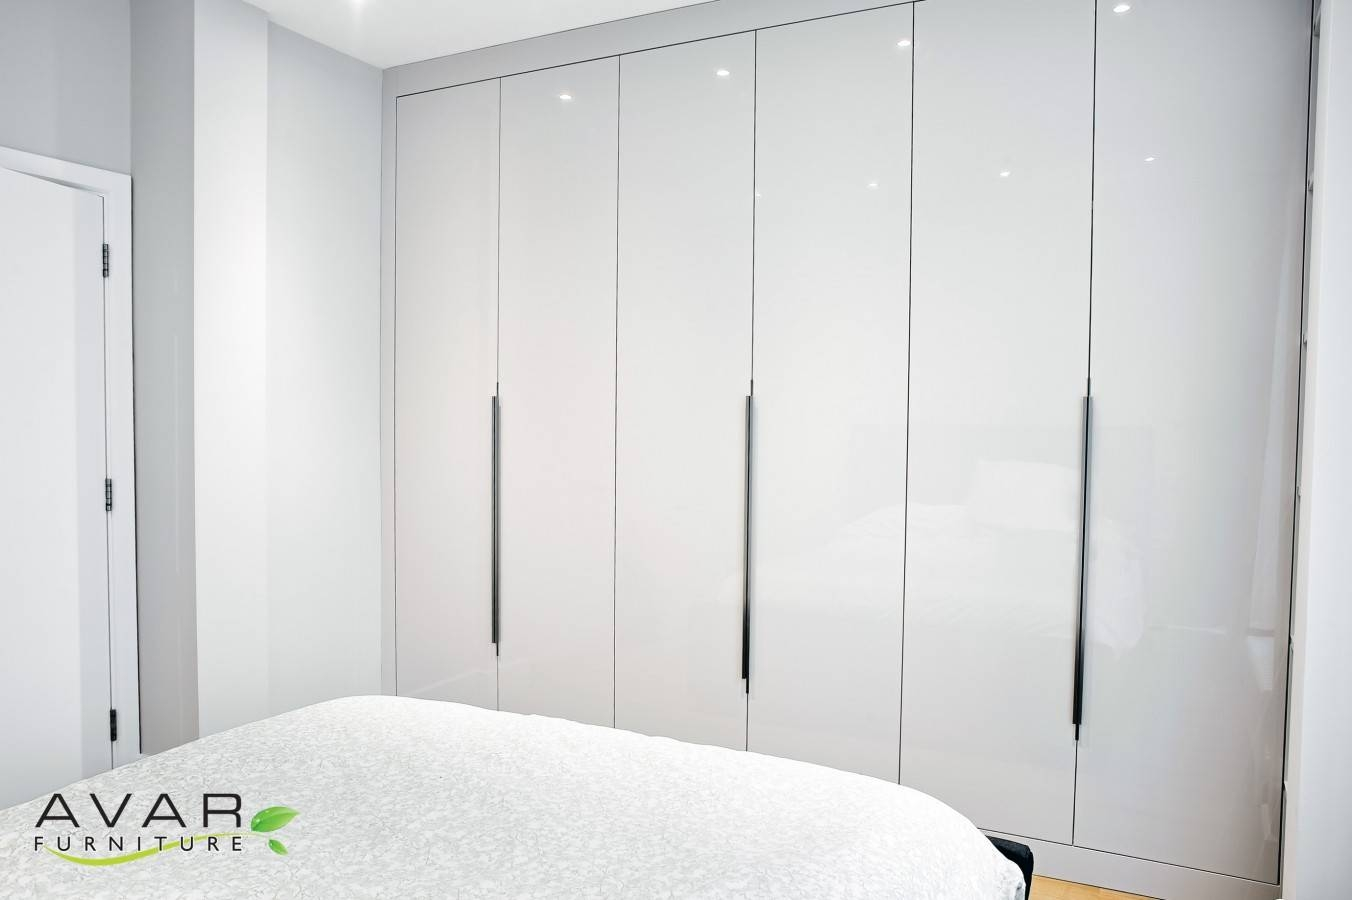 Ƹӝʒ Fitted Wardrobe Ideas Gallery 19 | North London, Uk | Avar regarding High Gloss Wardrobes (Image 15 of 15)